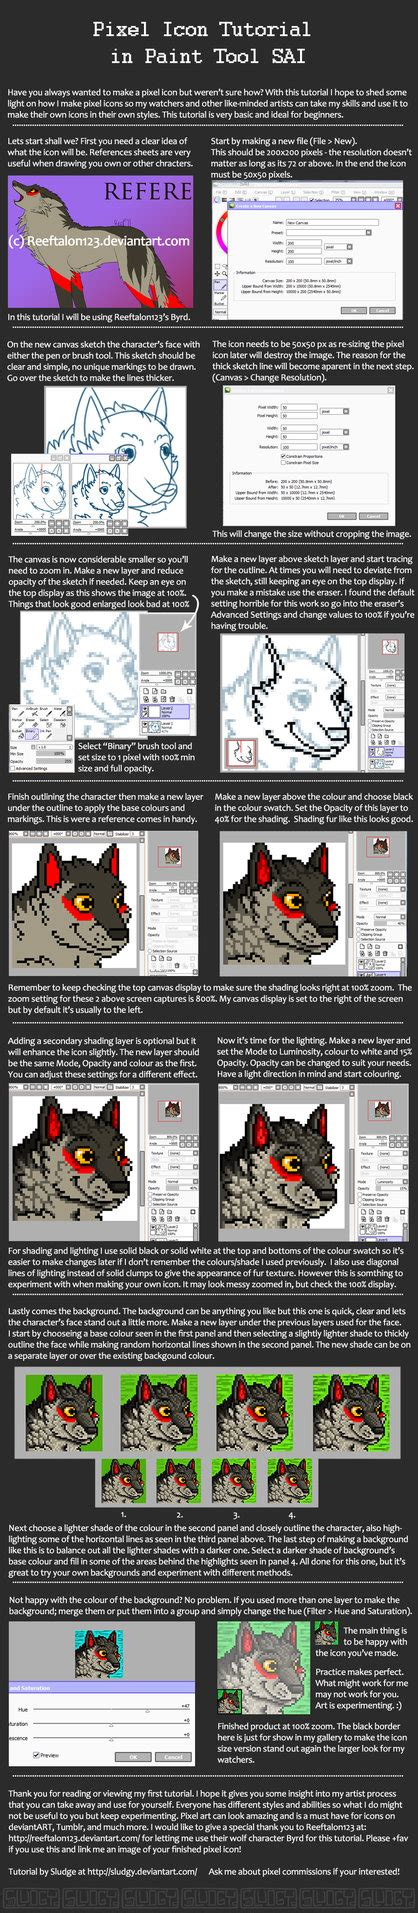 paint tool sai pixel pixel icon tutorial in paint tool sai by sludgy on deviantart